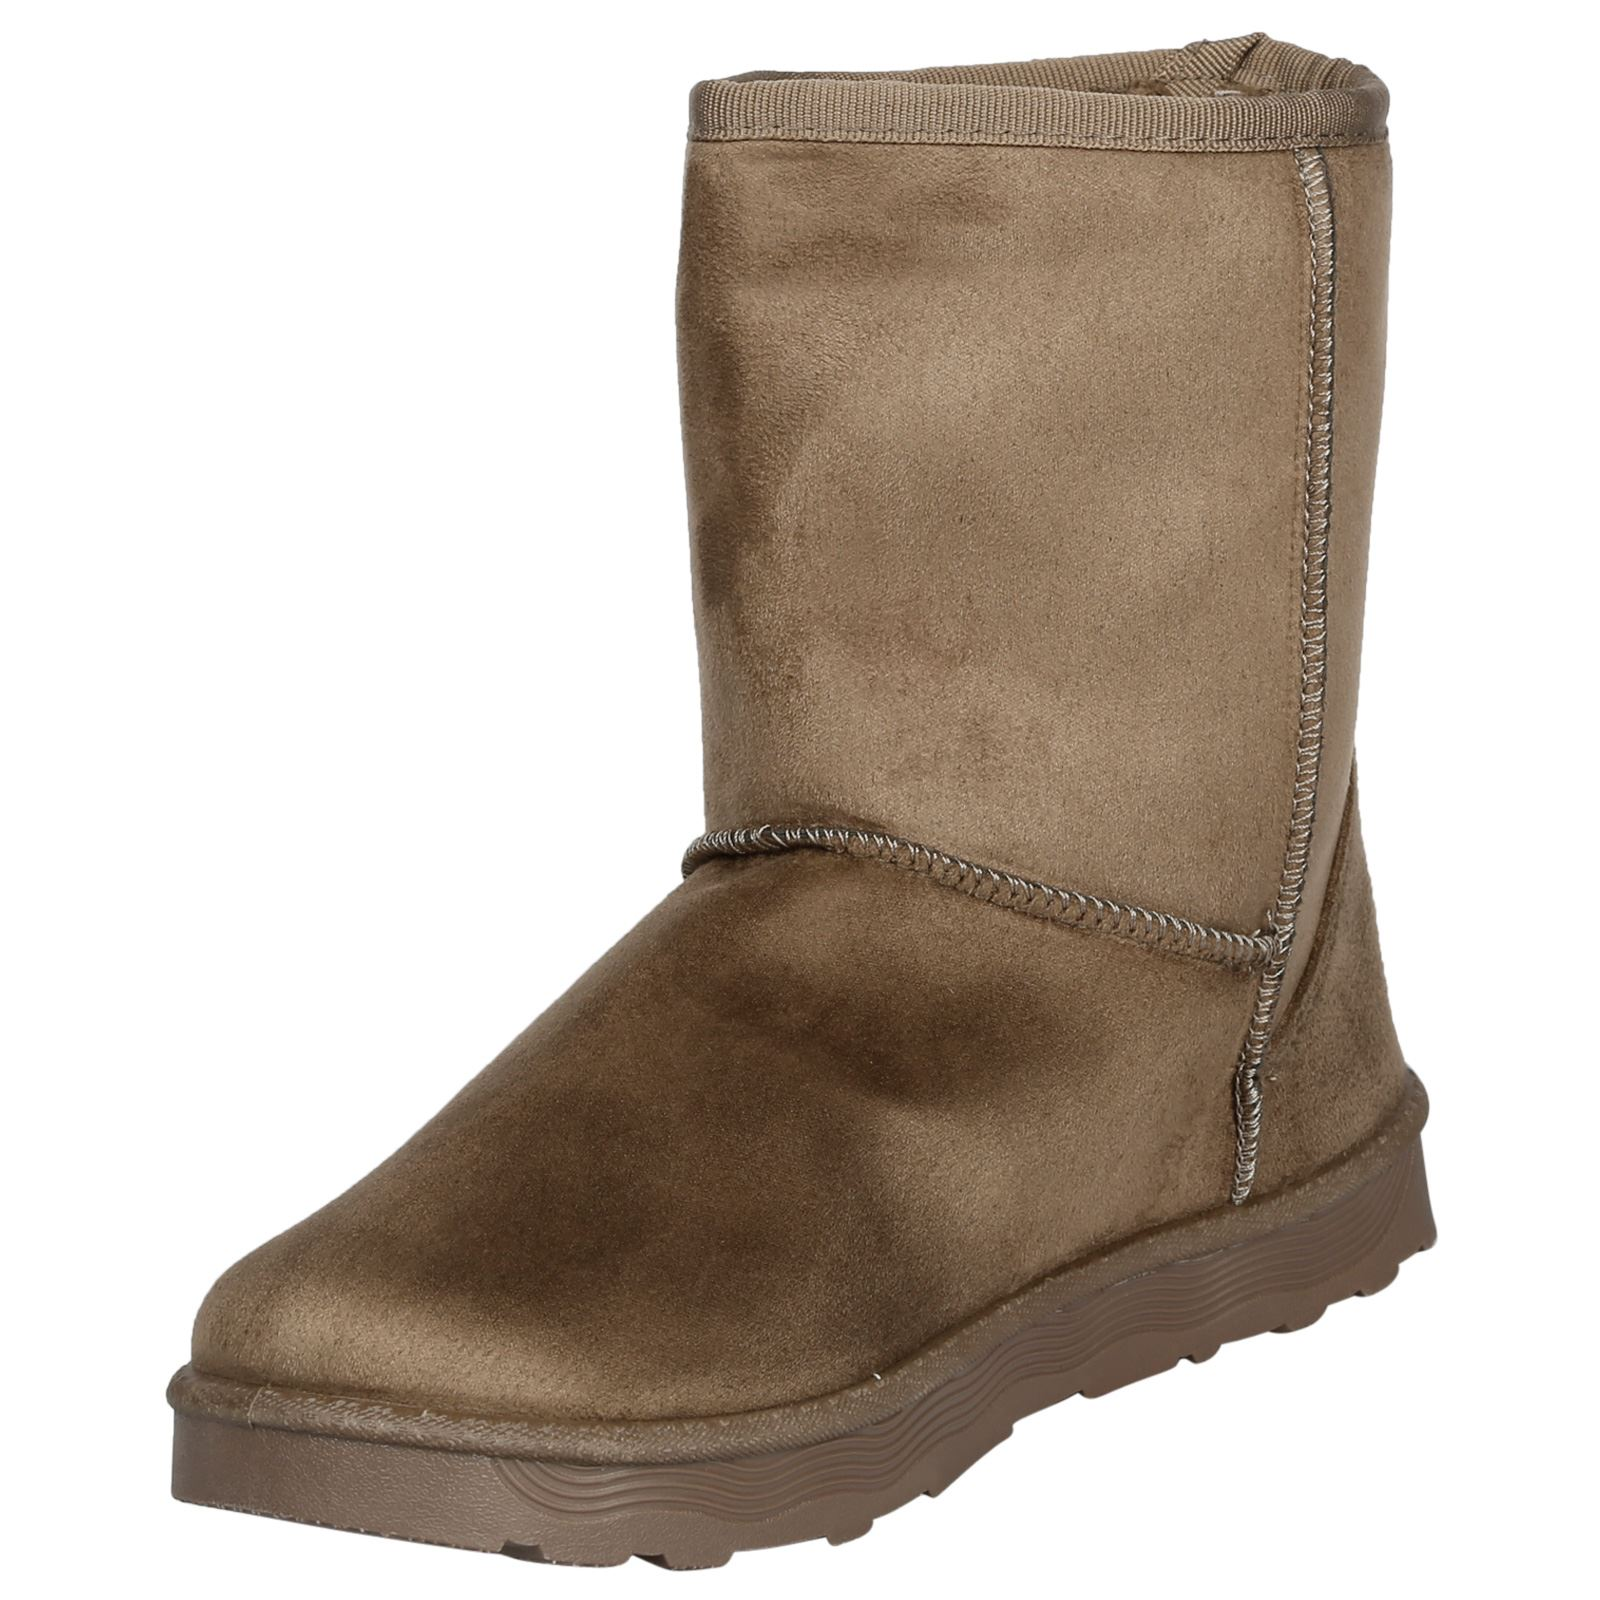 Paisleigh-Womens-Platfrom-Flat-Fur-Lined-Pull-On-Snug-Snow-Boots-Casual-Ladies thumbnail 15